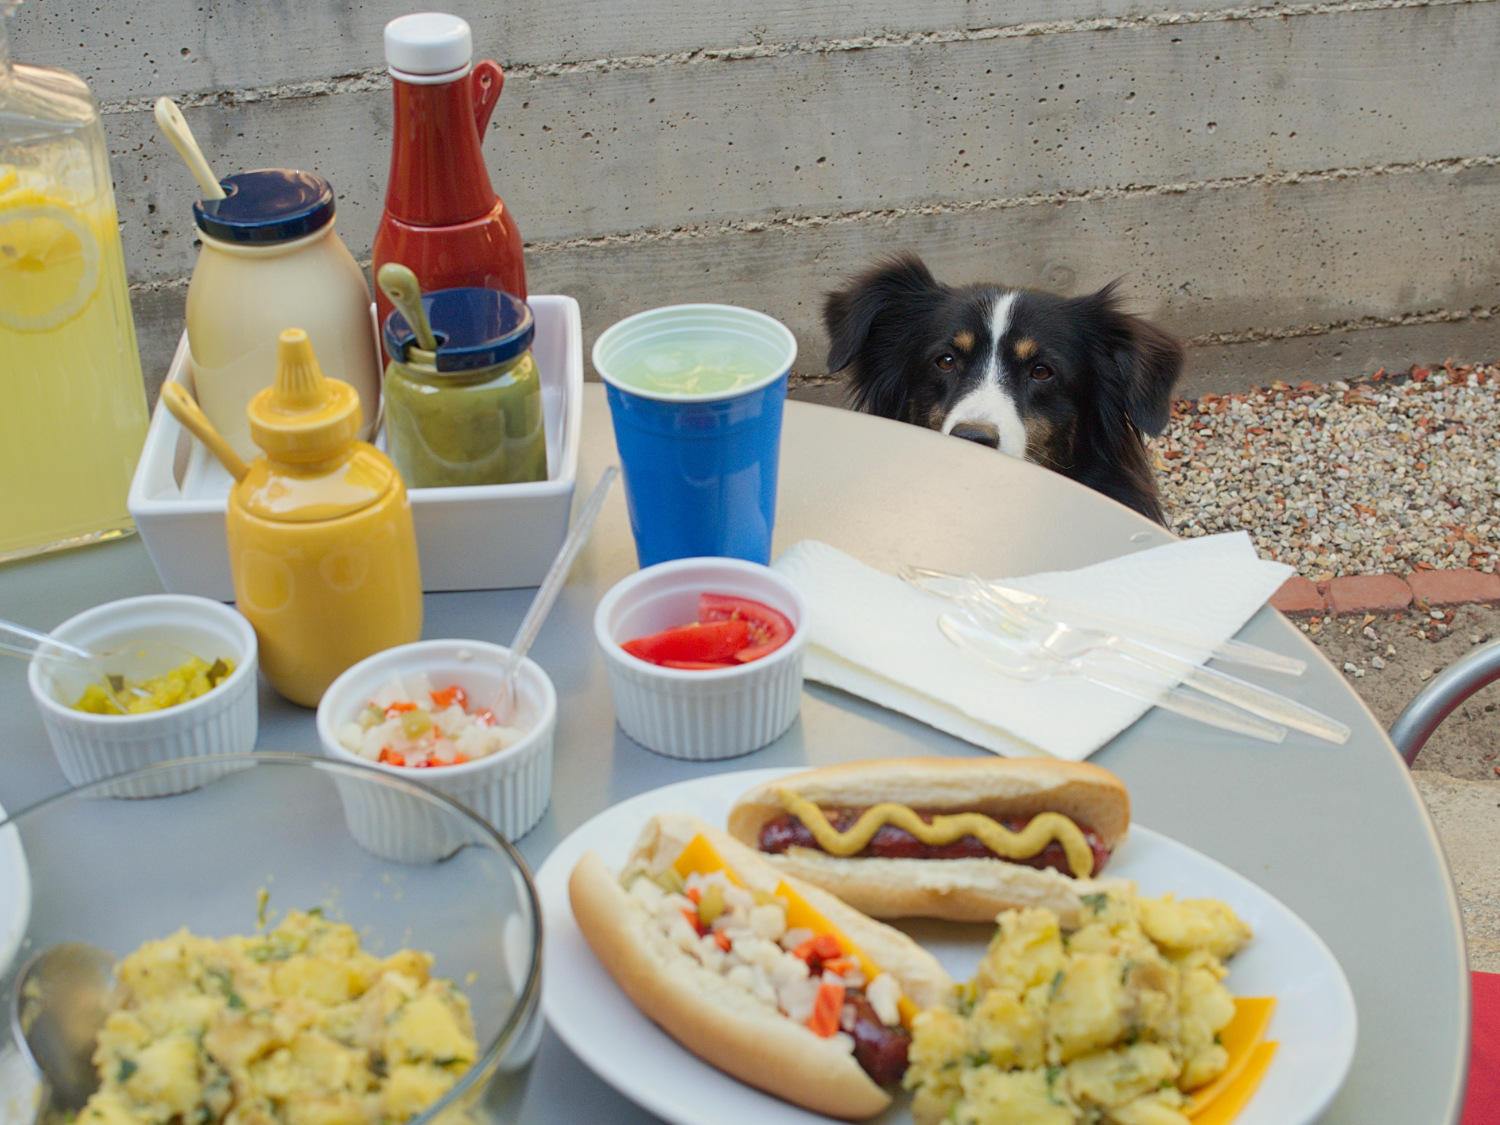 As always, Riley keeps a watchful eye on things... especially those hot dogs.